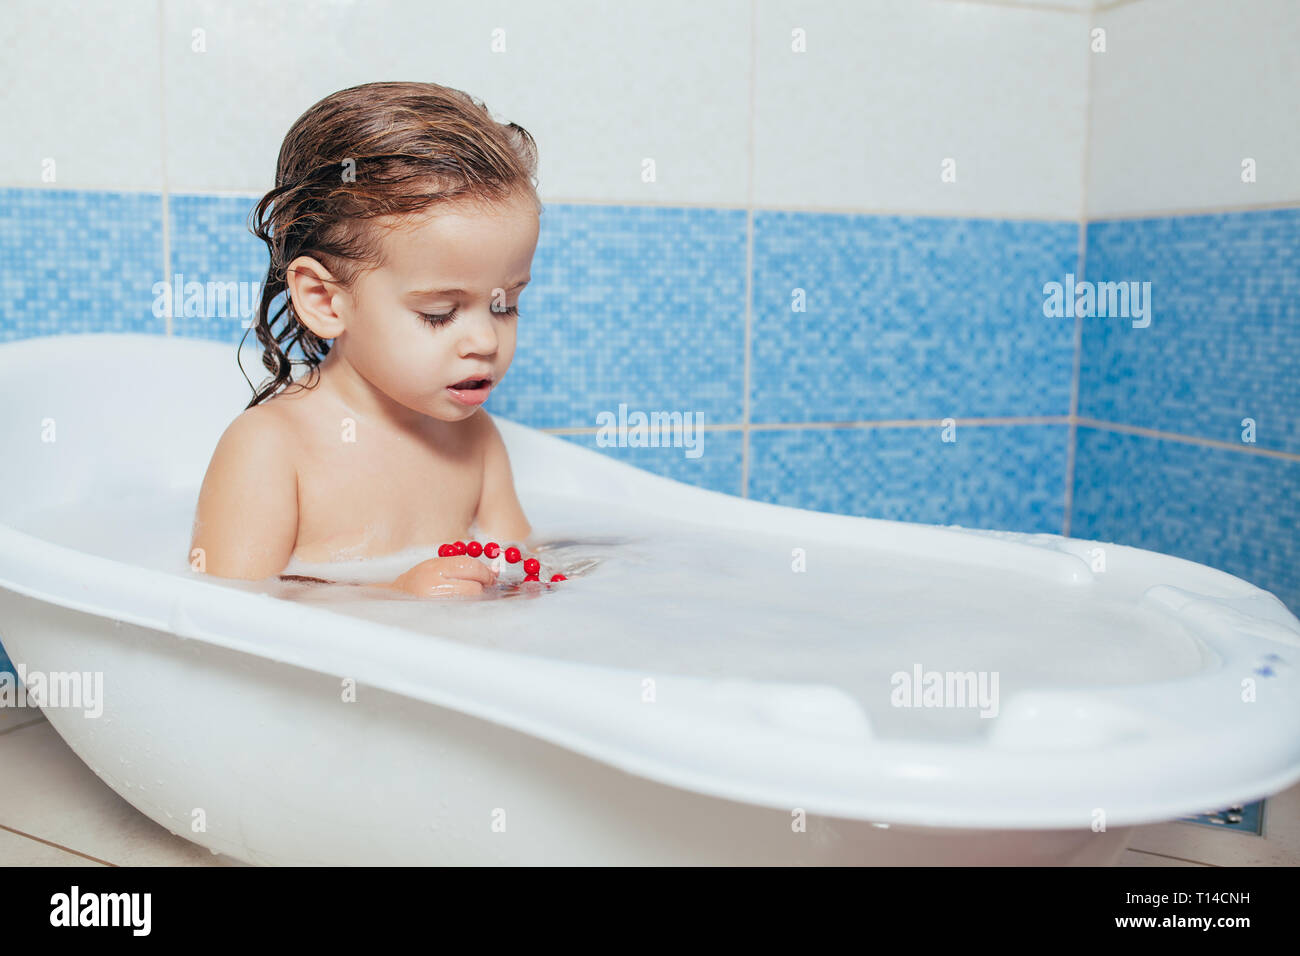 c0e8b22e321b7 Fun cheerful happy toddler baby taking a bath playing with foam bubbles. Little  child in